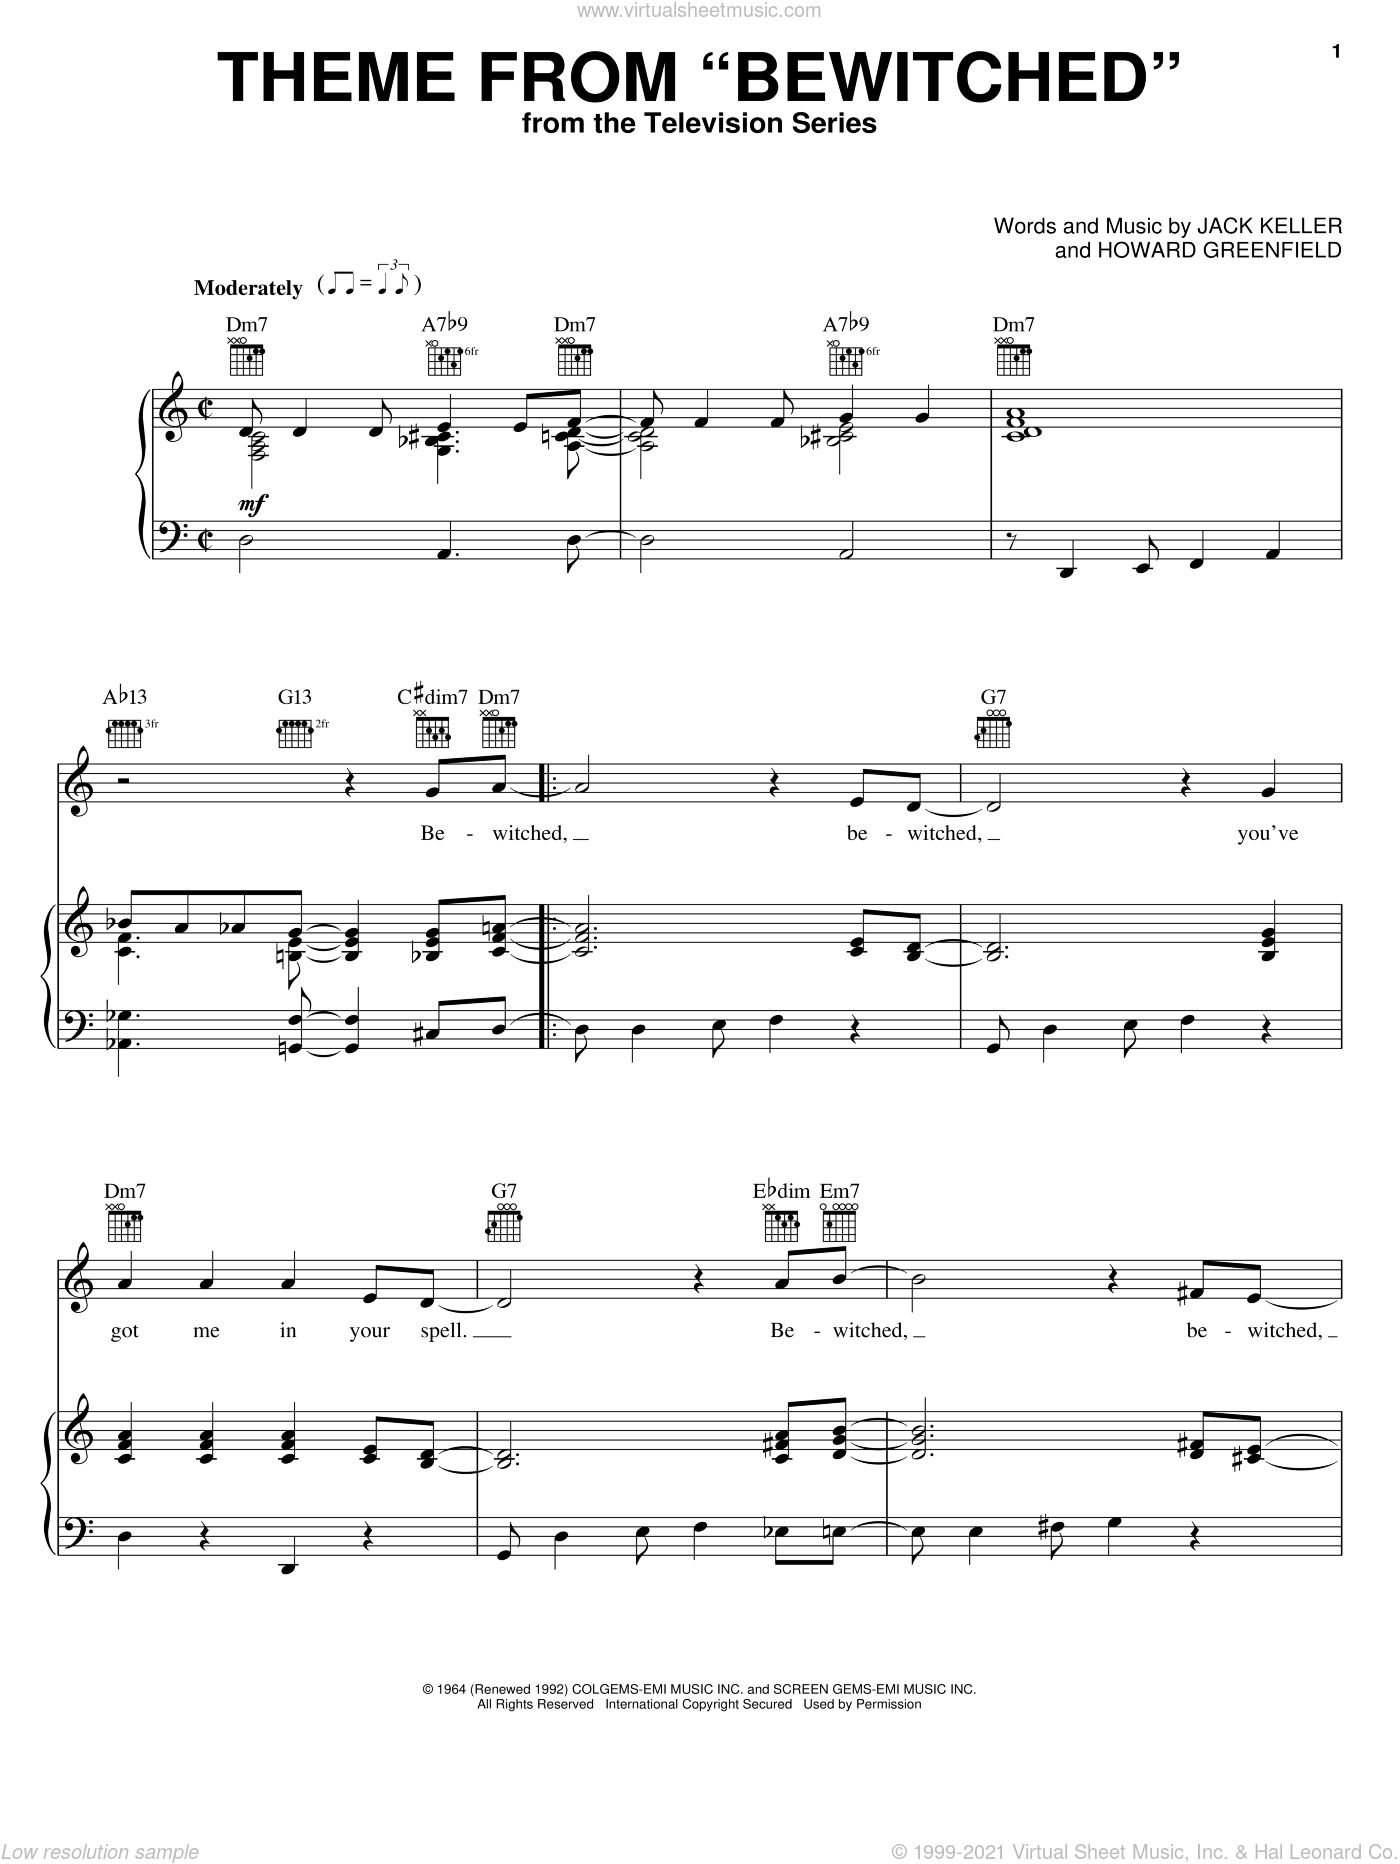 Theme from Bewitched sheet music for voice, piano or guitar by Howard Greenfield and Jack Keller, intermediate skill level